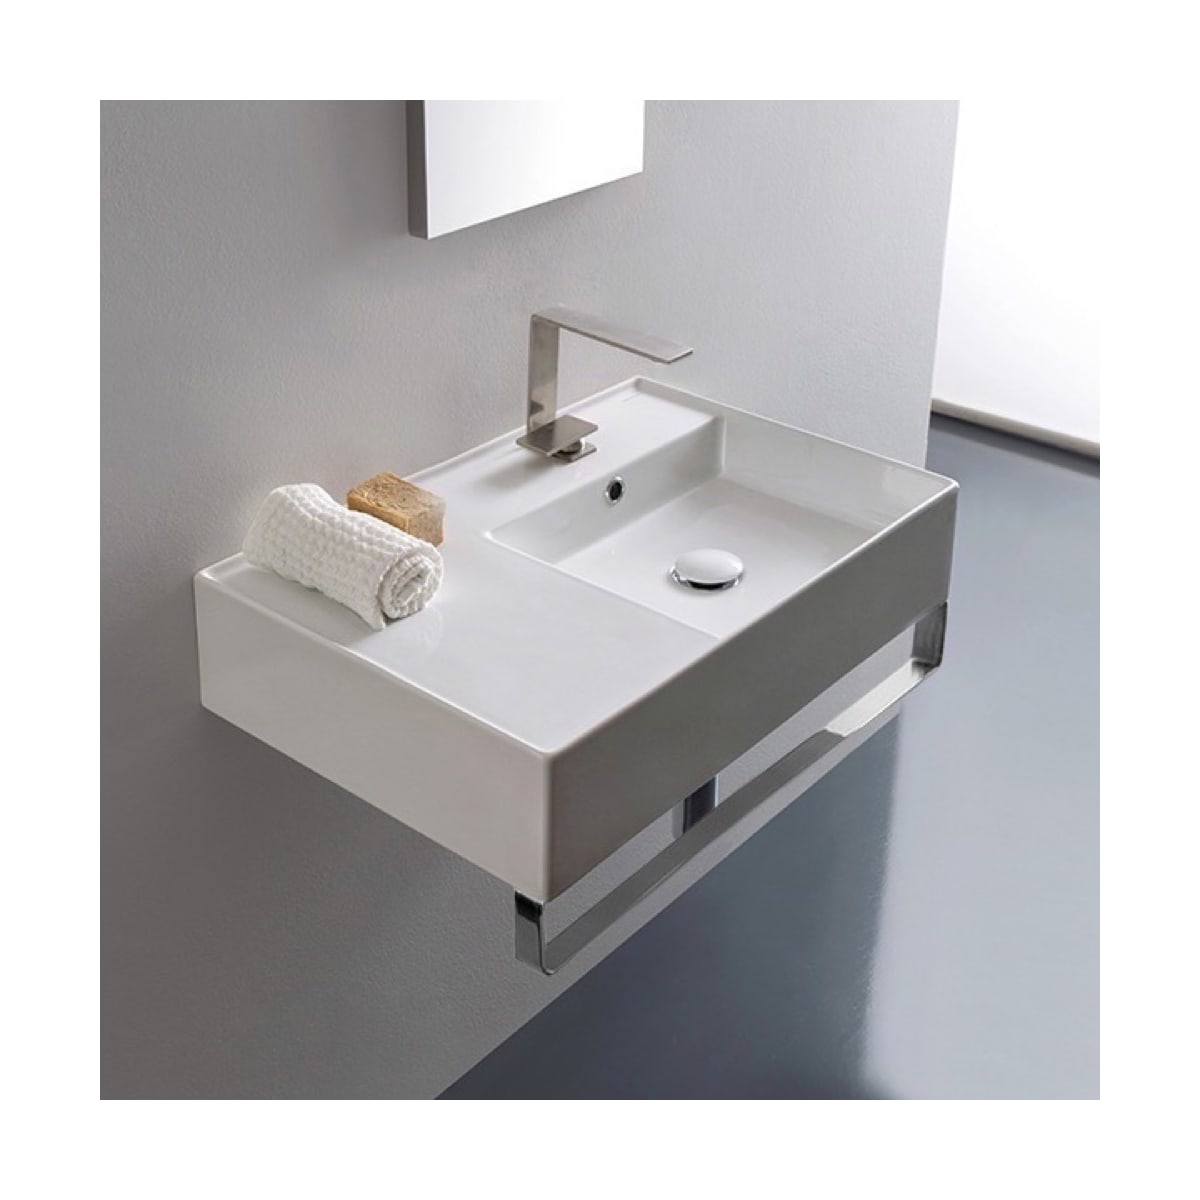 Nameeks Scarabeo 5117 Tb One Hole White Teorema 2 0 24 Rectangular Ceramic Wall Mounted Bathroom Sink With Faucet Includes Overflow Faucetdirect Com